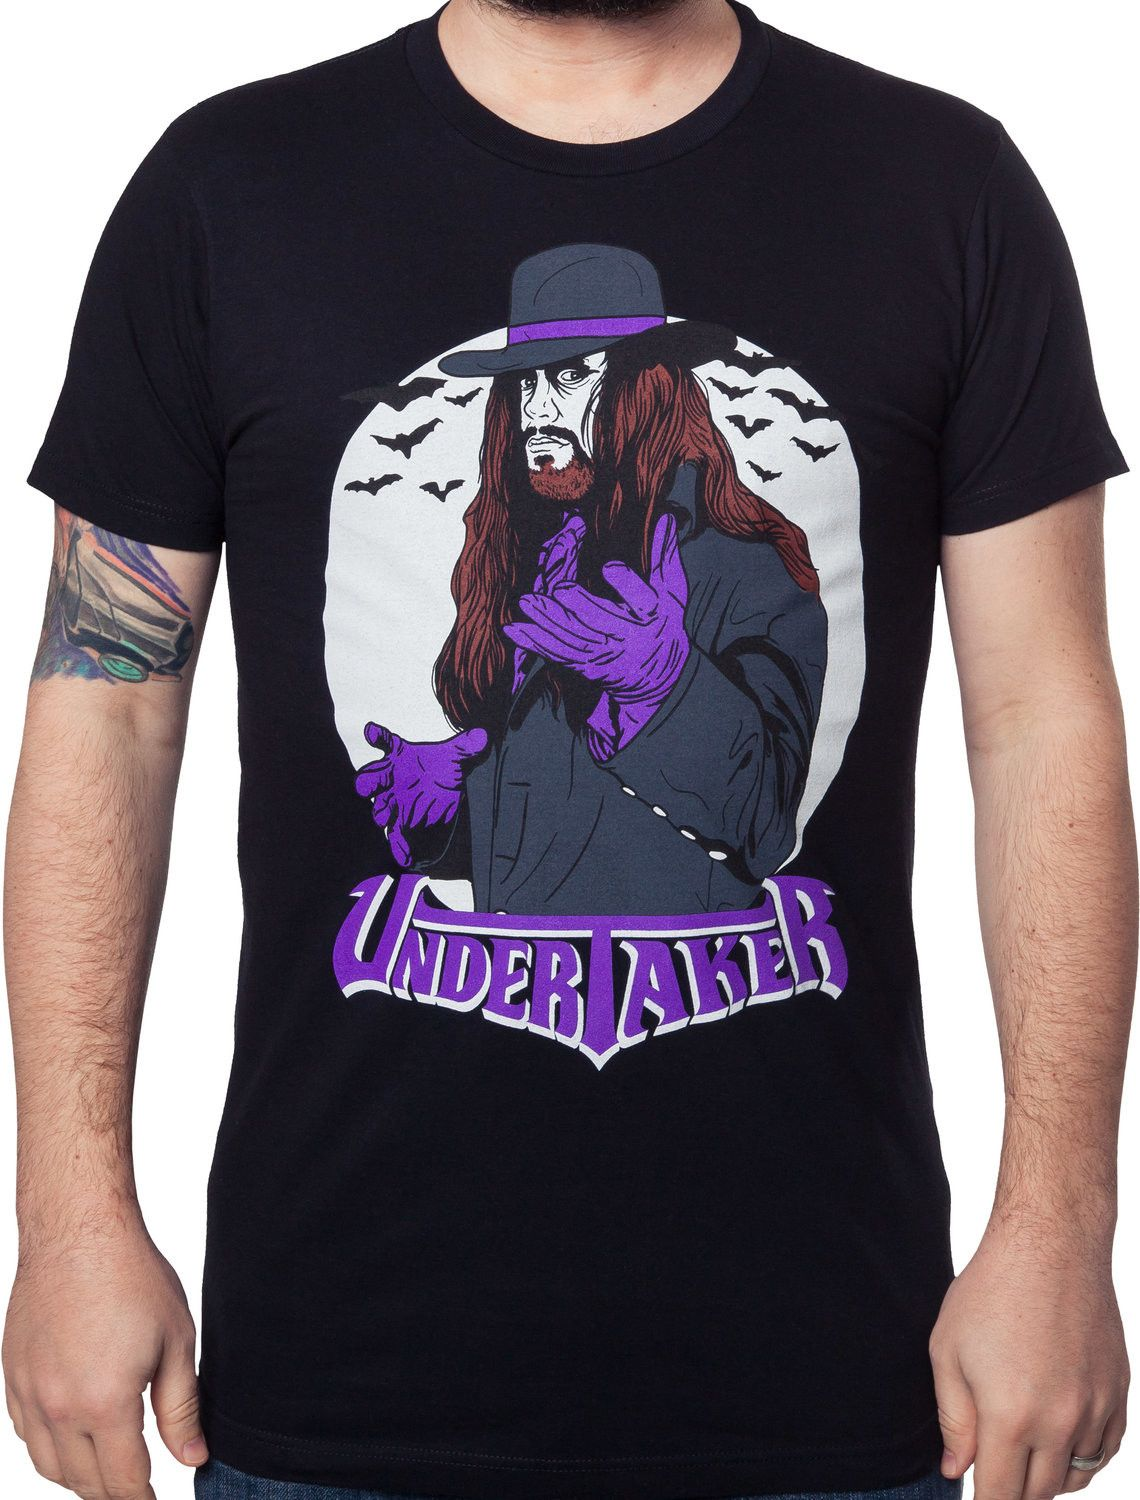 f236d4459 Undertaker Shirt: 80s Wrestling Shirts | New Mens T-Shirts From ...